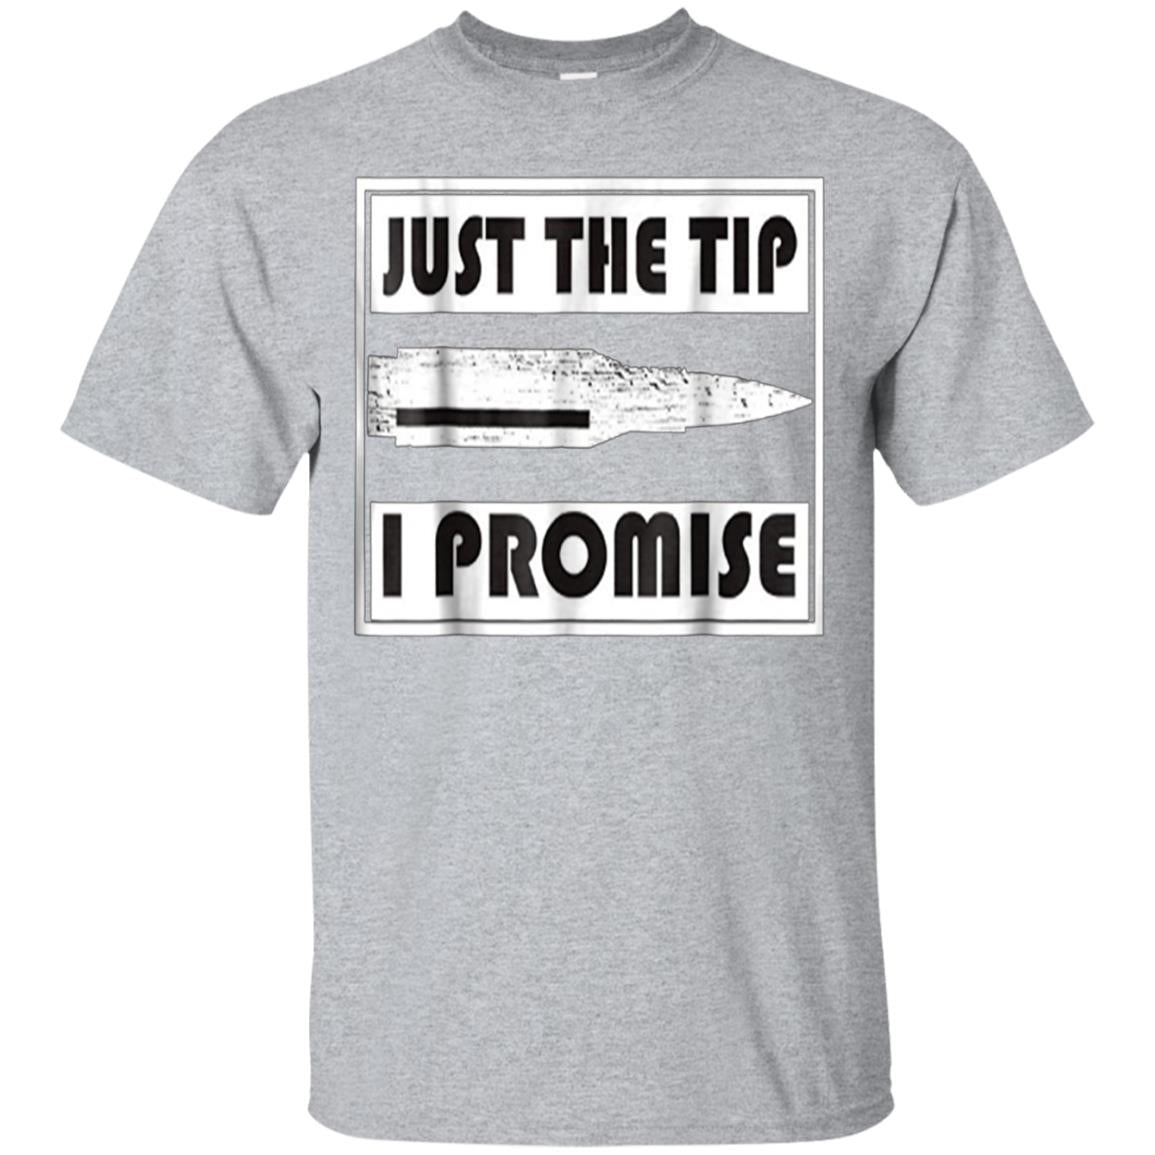 Just The Tip I Promise T-Shirt-Veteran's Day Memorial Day 99promocode